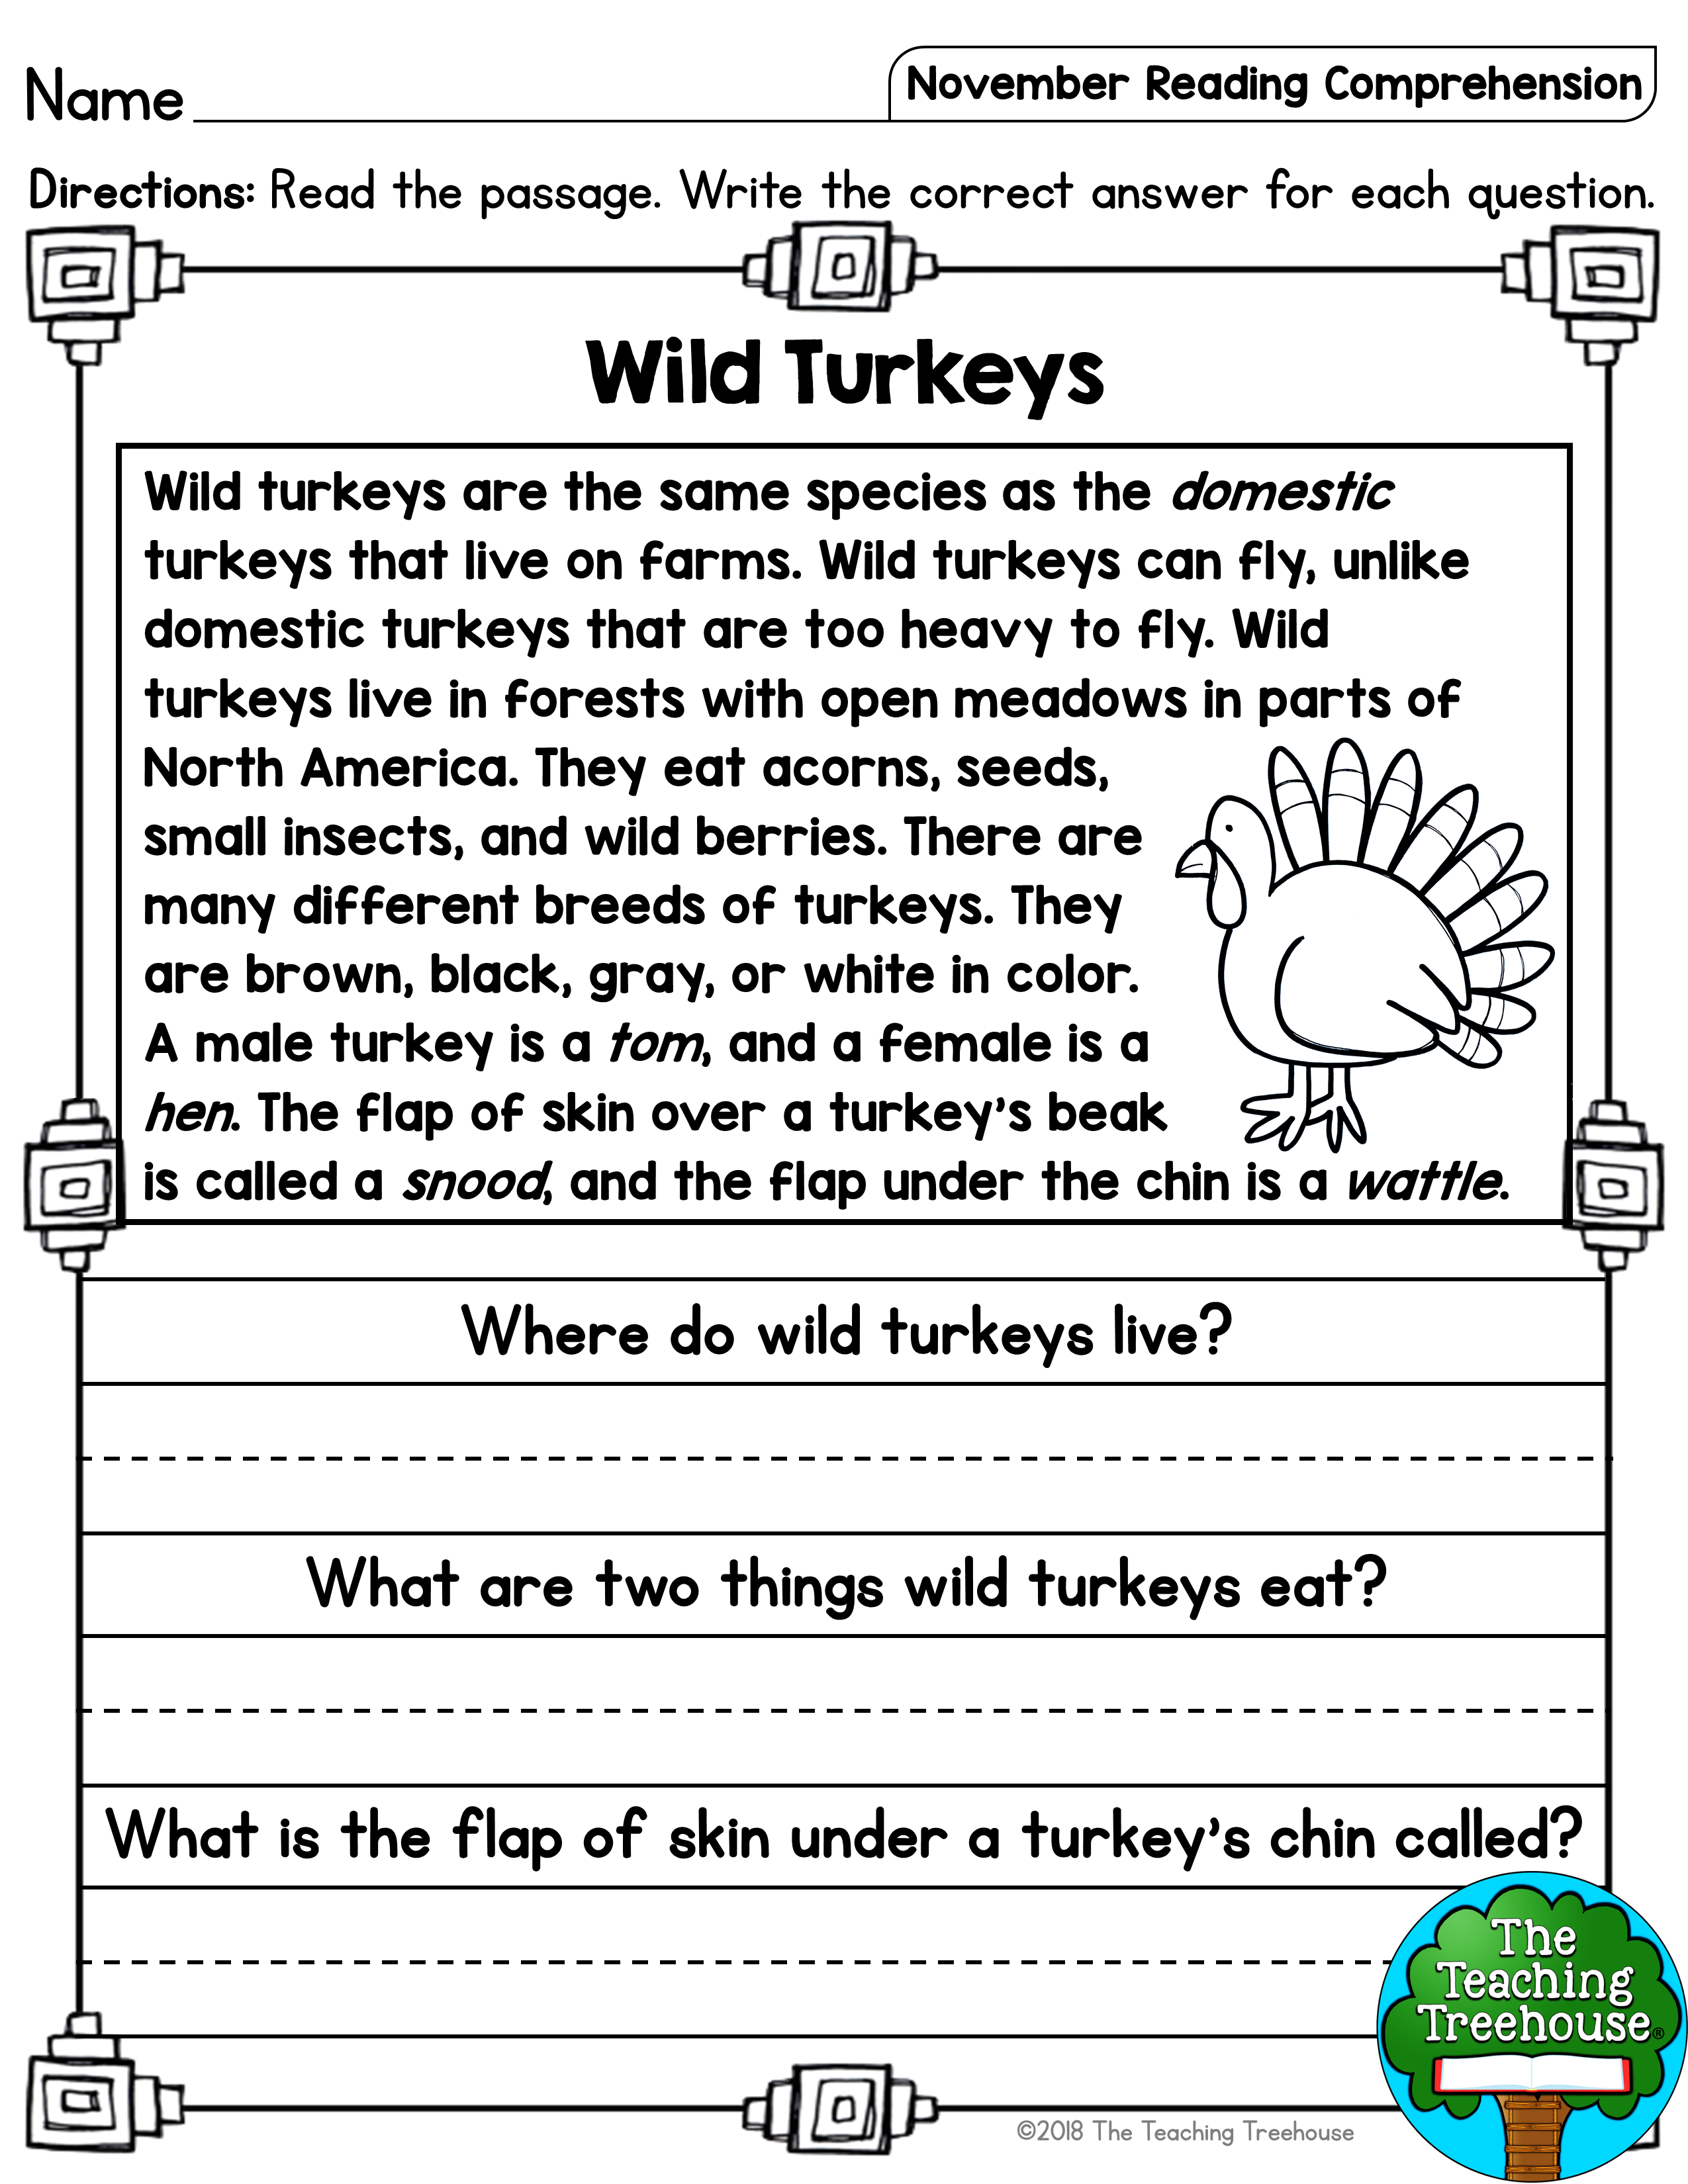 November Reading Comprehension Passages For Kindergarten